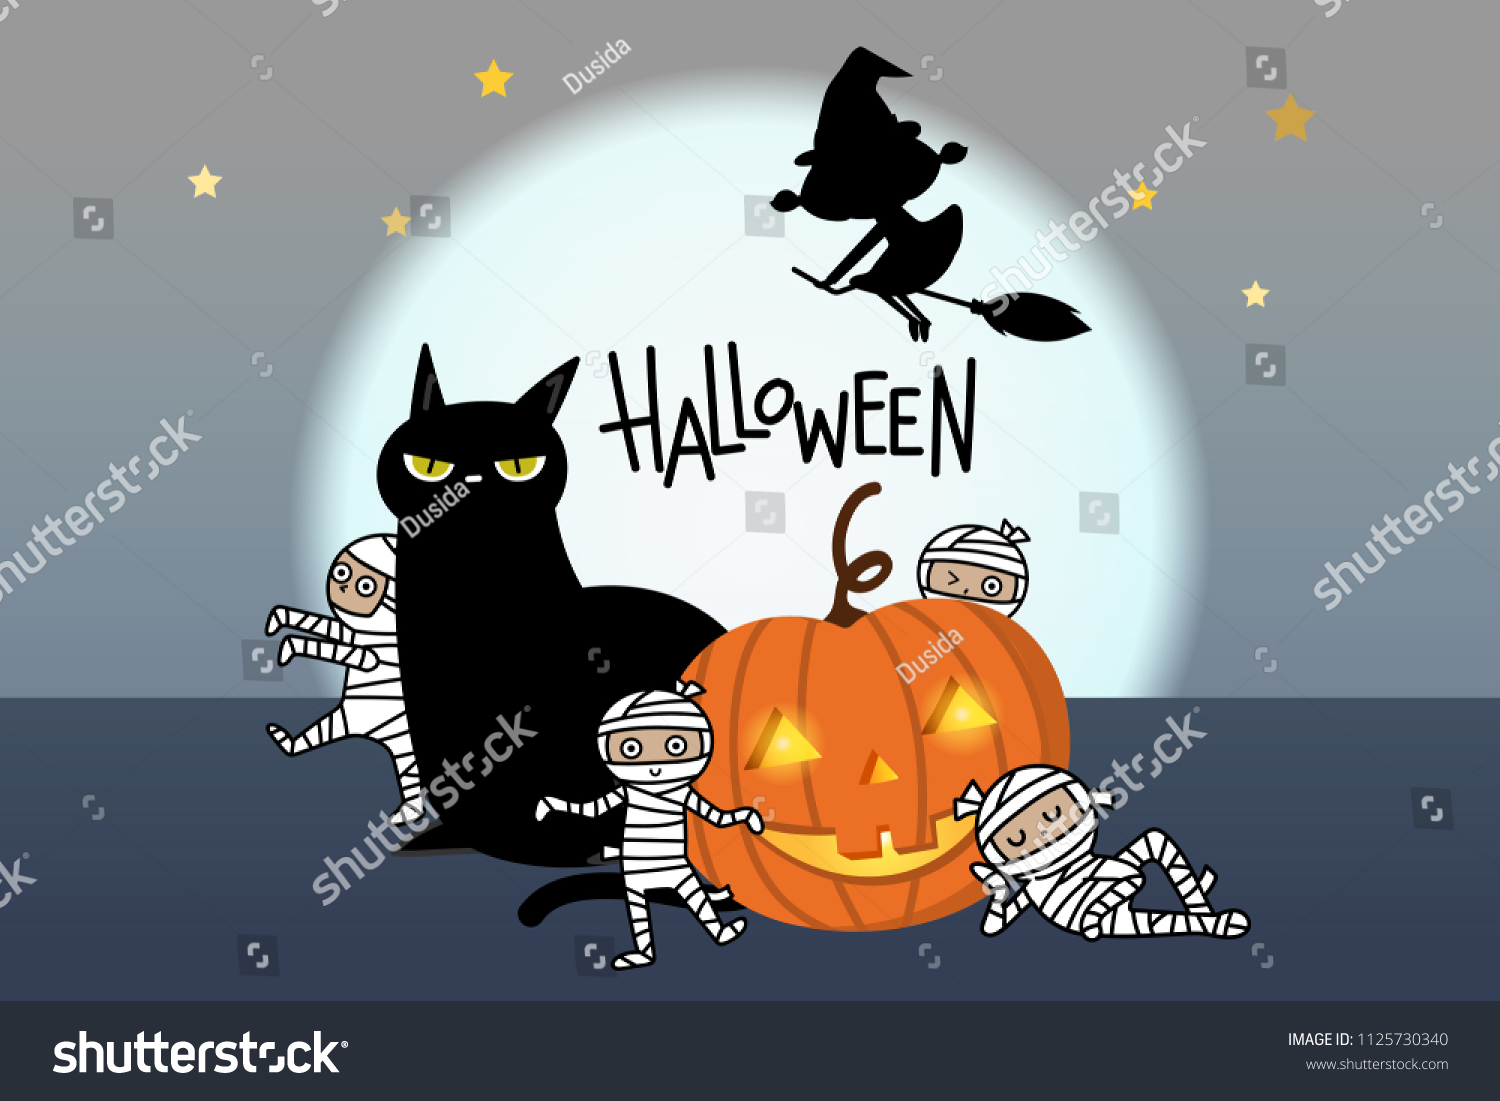 Happy Halloween Greeting Card With Pumpkin, Black Cat, Scary Mummy And Witch.  Holidays